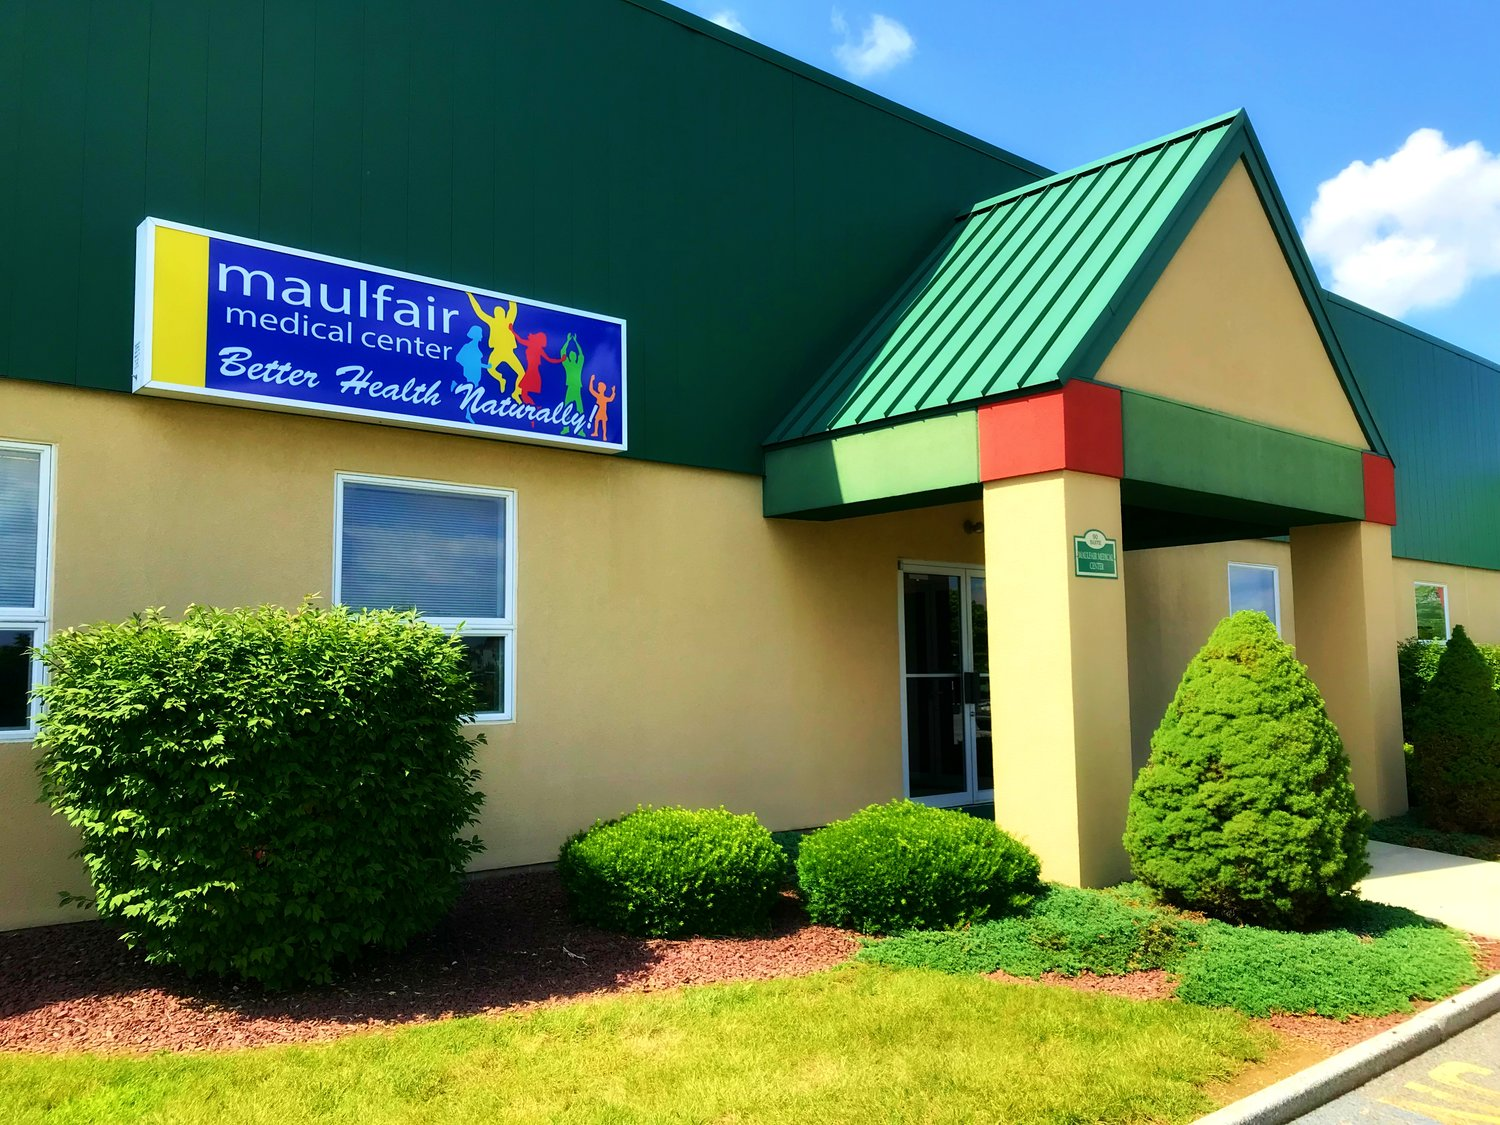 Maulfair Medical Center — Home - Alternative, Complementary